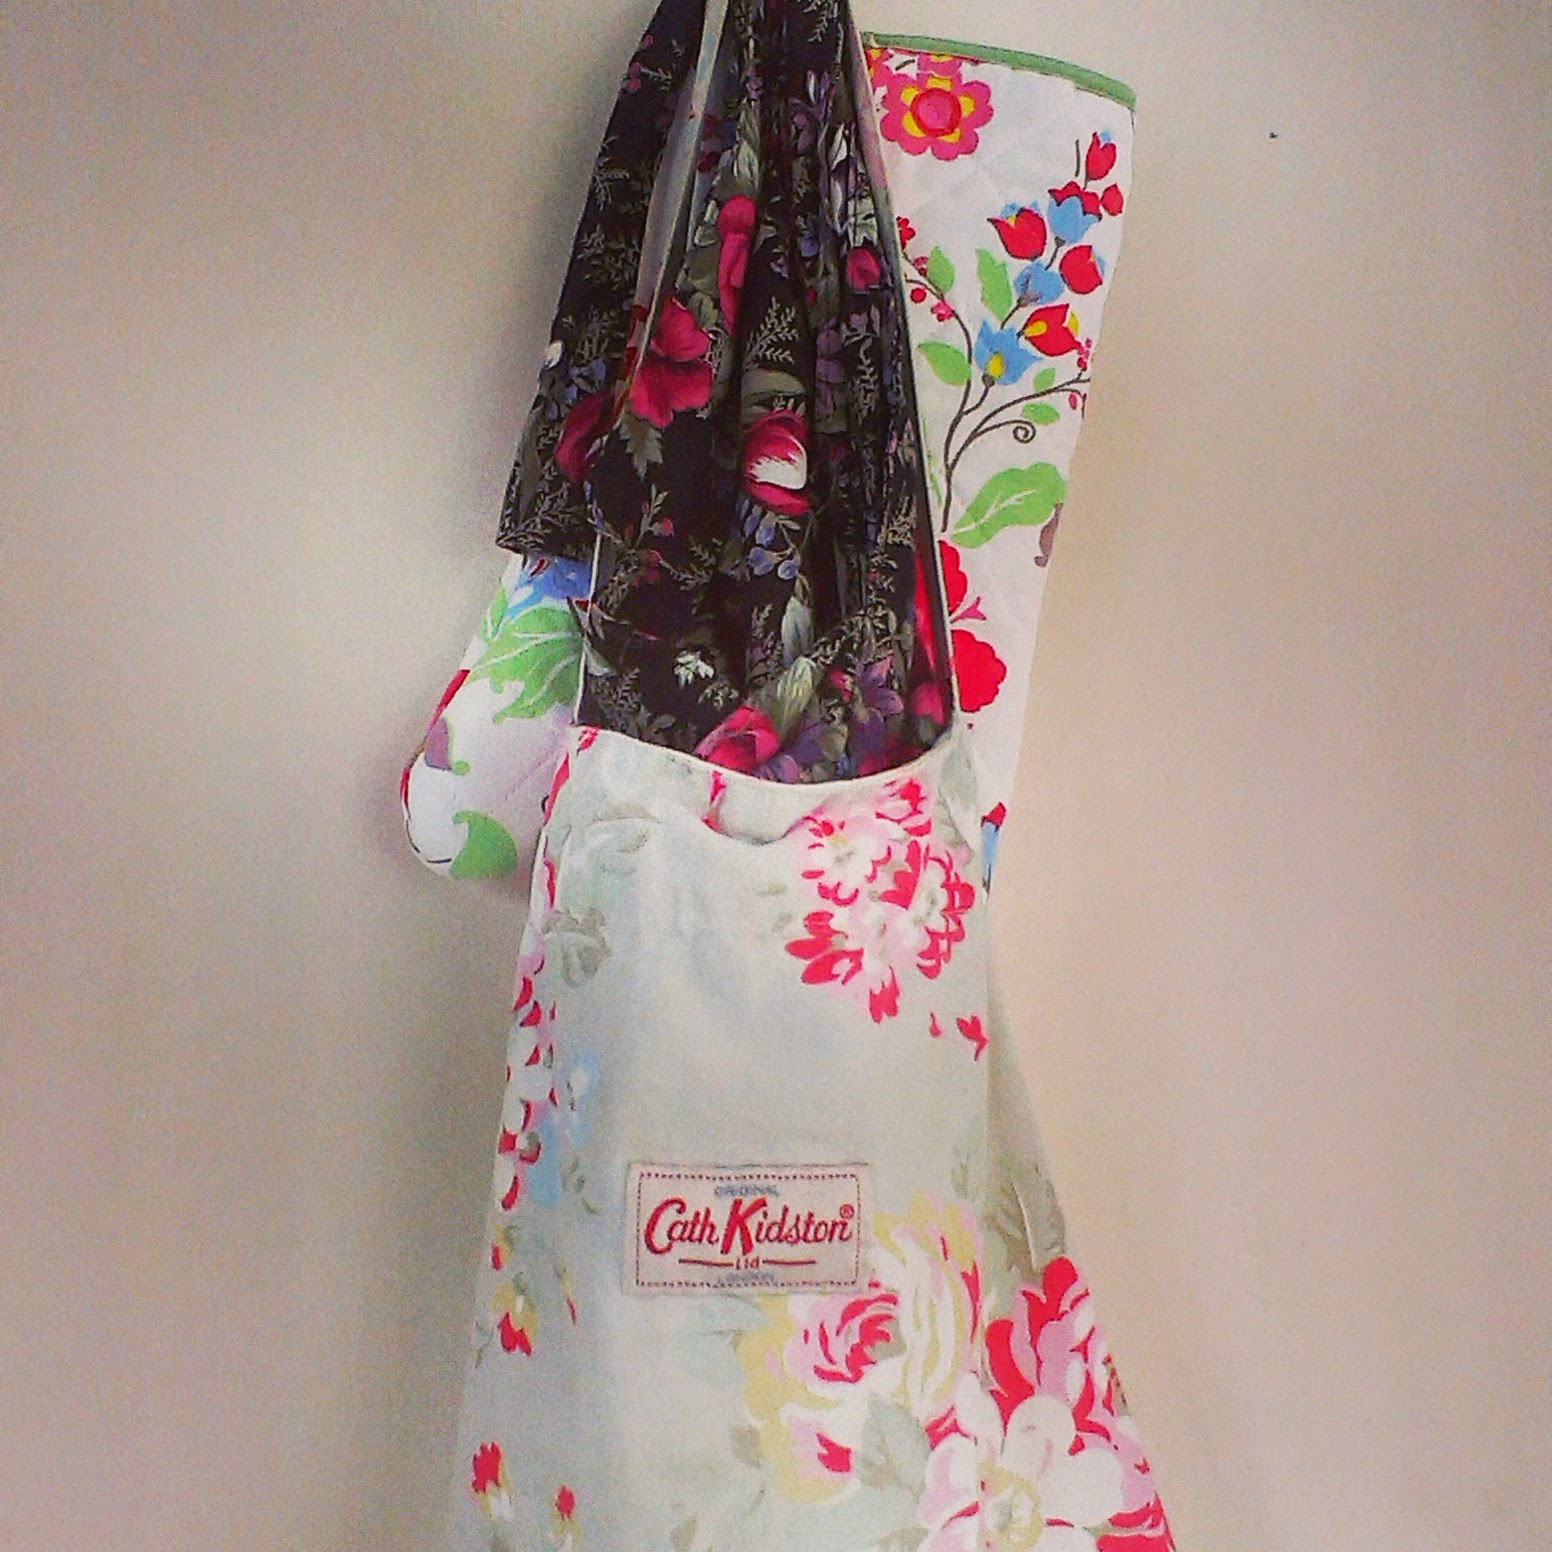 6pm - apron hung up for the day